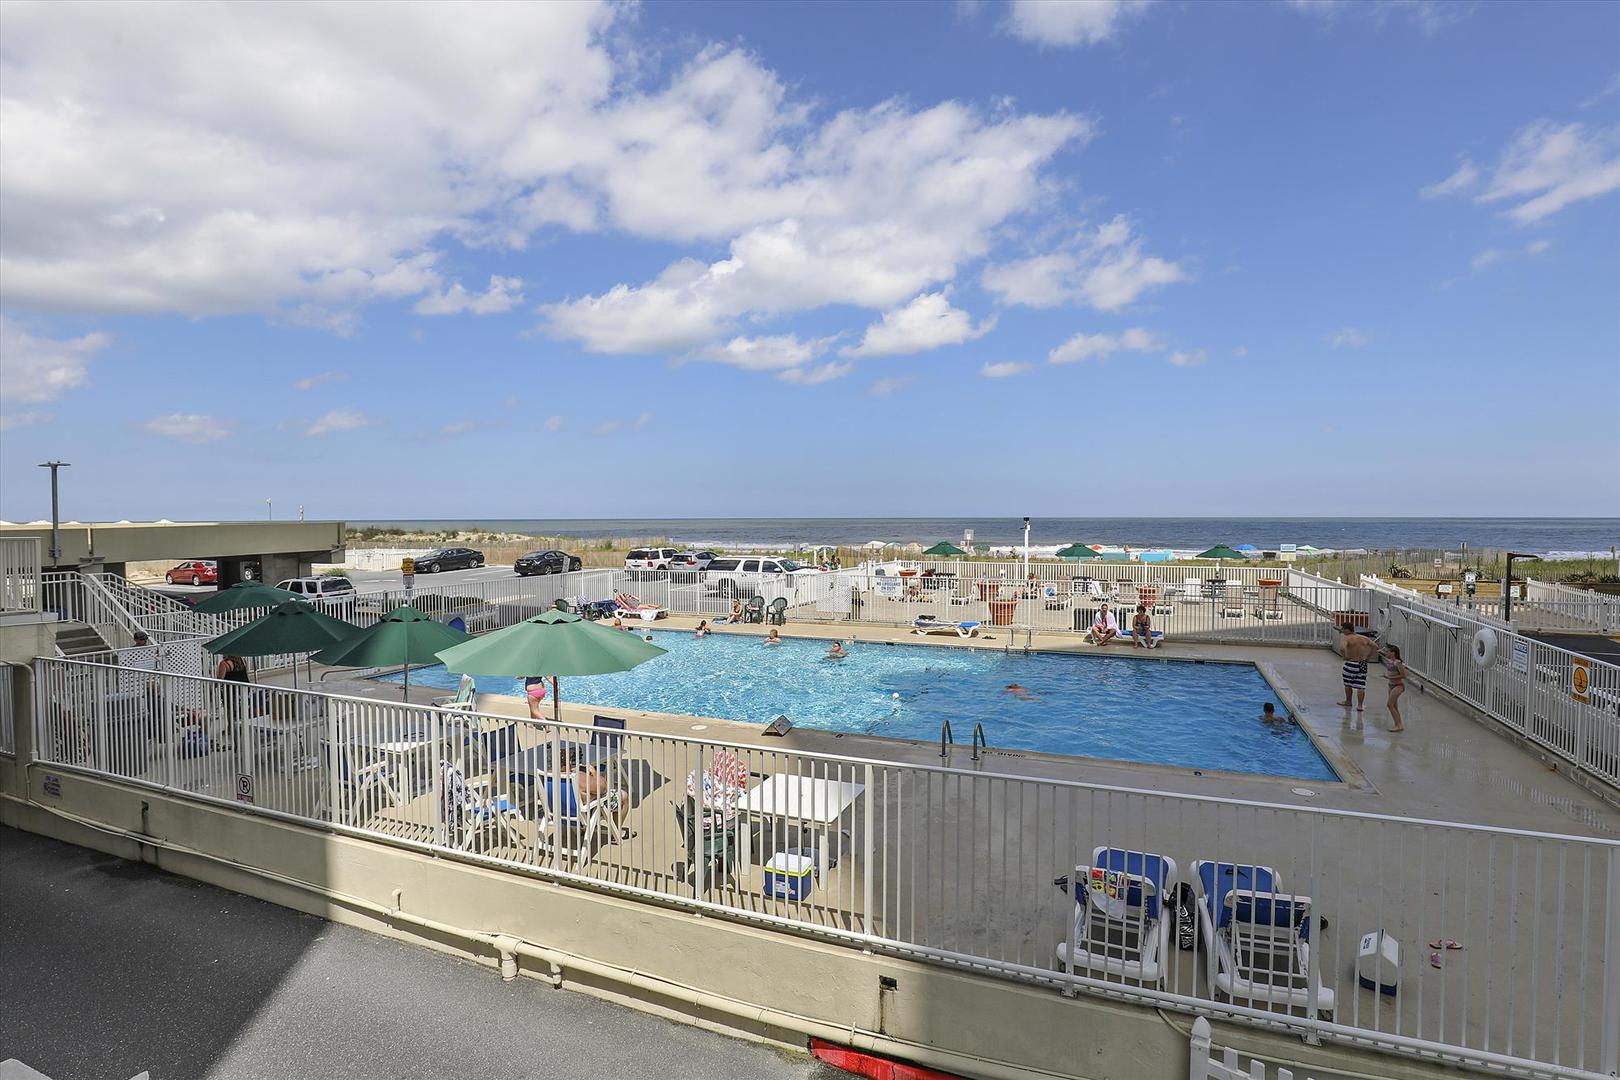 Quay Outdoor Pool (open seasonally)